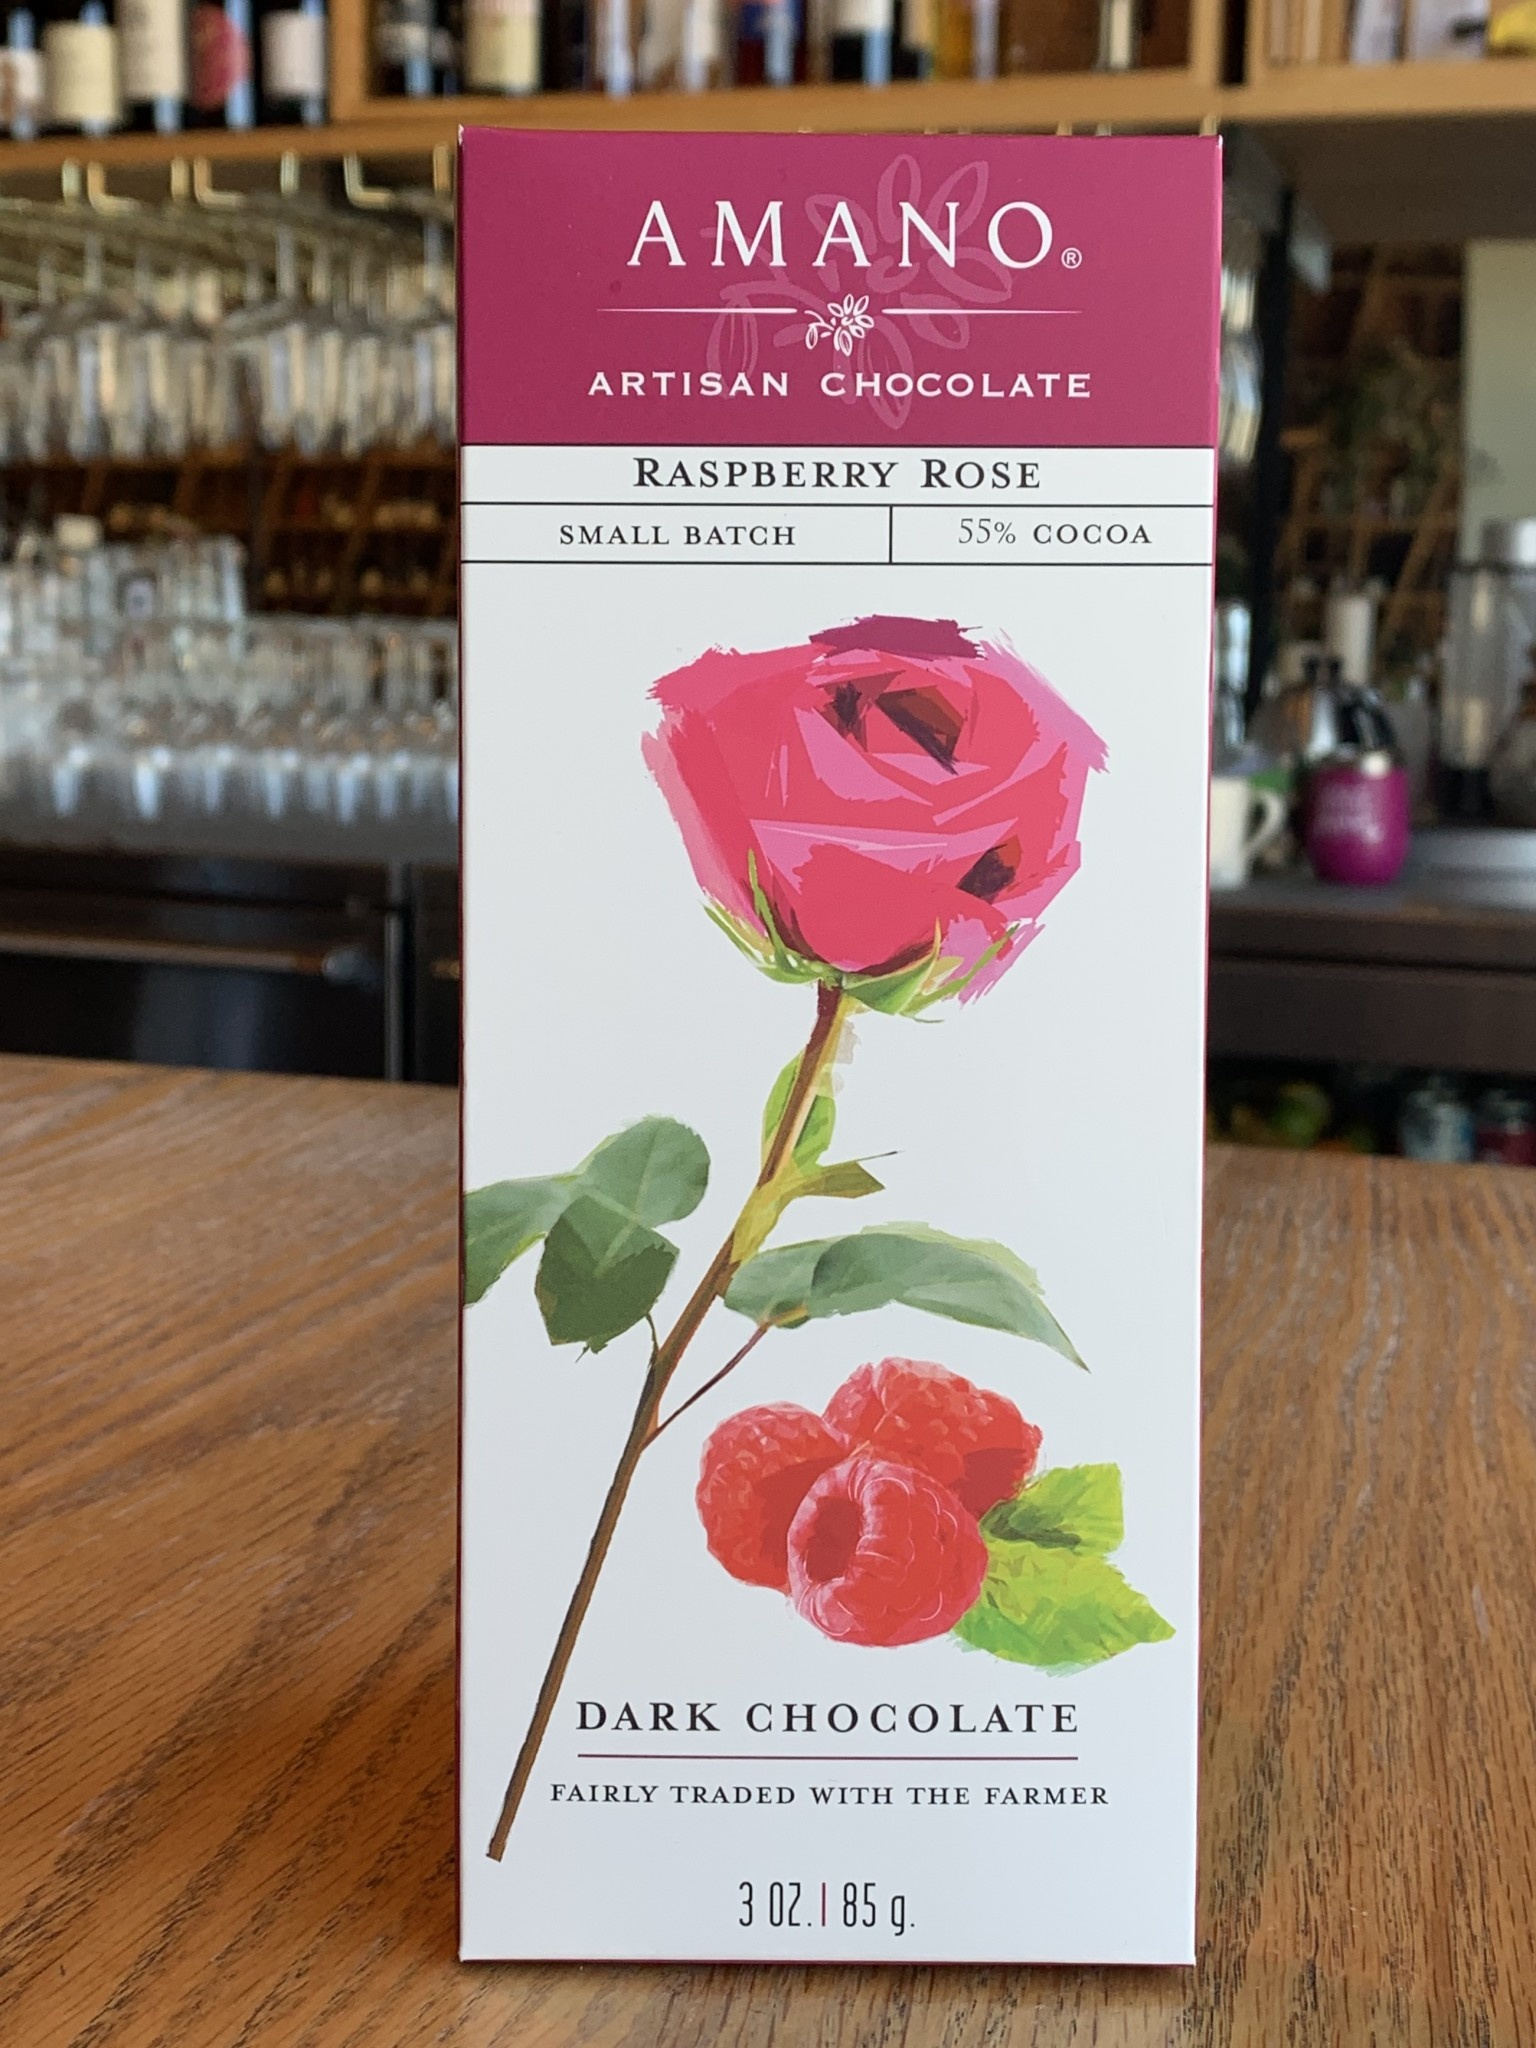 Amano Artisan Chocolates Amano Artisan Chocolates Raspberry Rose 3oz